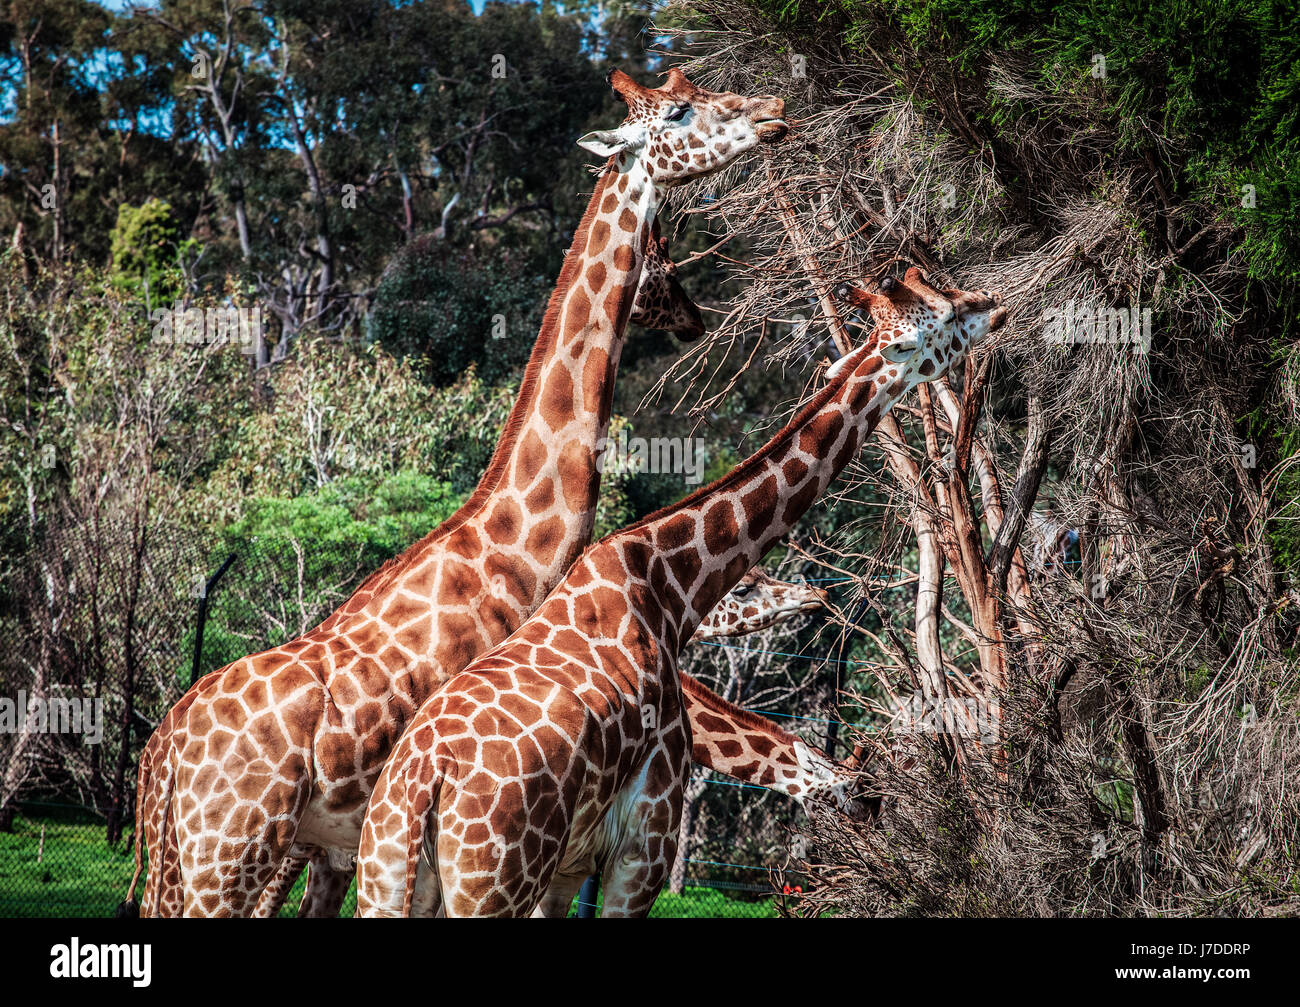 Giraffes feeding on acacia tree looking like four-headed creature - Stock Image